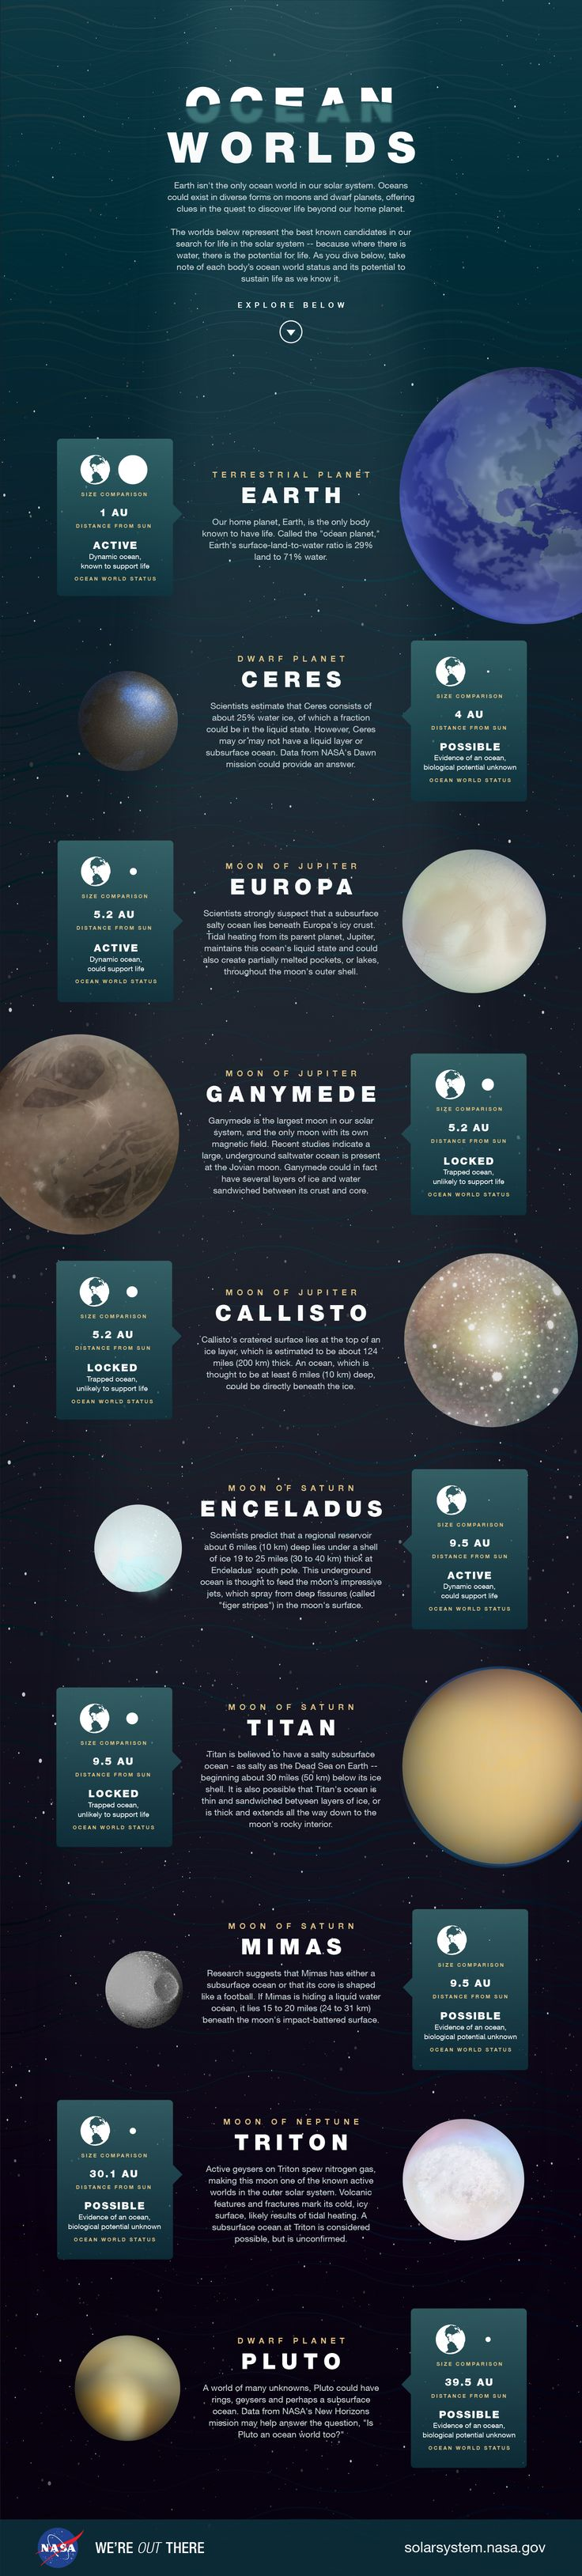 This illustration depicts the best-known candidates in our search for life in the solar system.